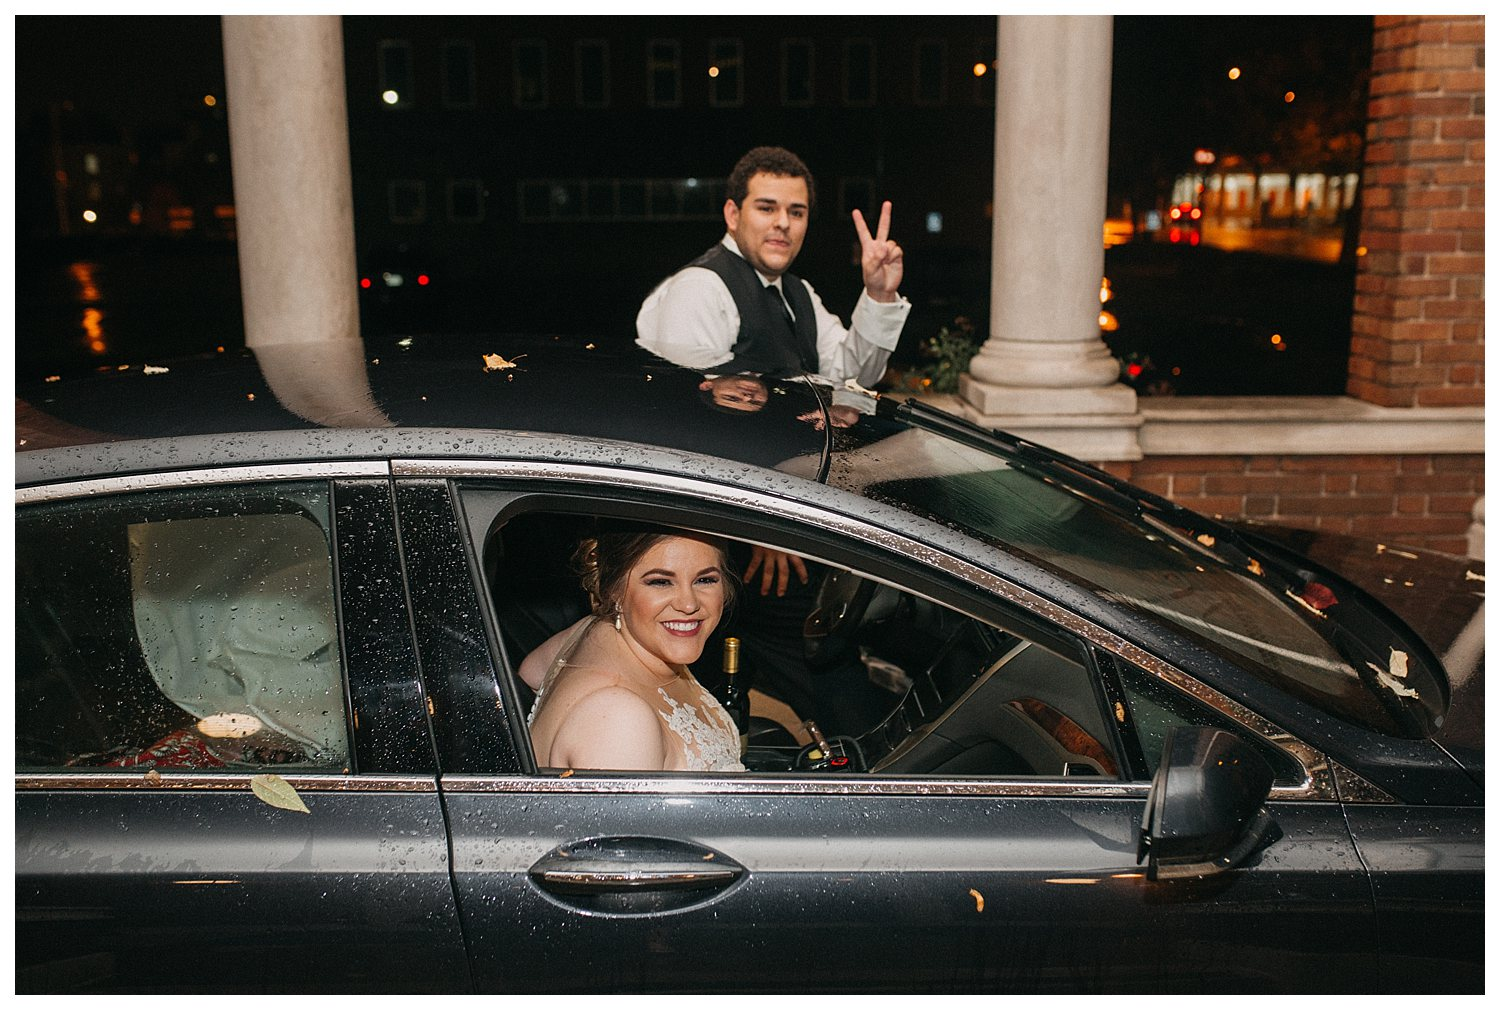 Kelsey_Diane_Photography_Loose_Mansion_Wedding_Photography_Kansas_City_Victor_Lyndsay_0177.jpg